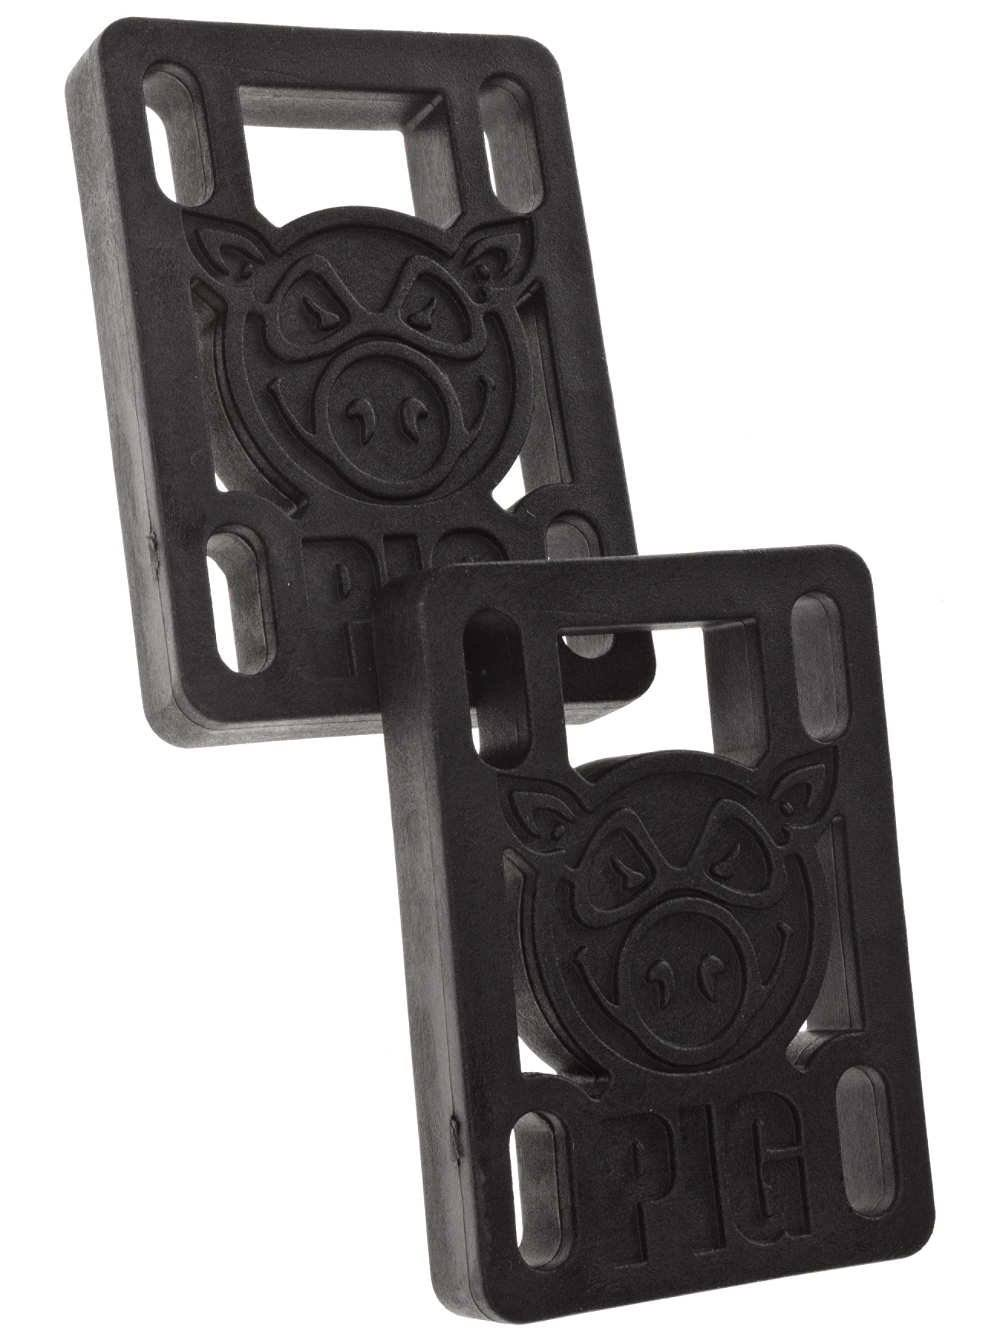 Pig Skateboard Risers 1/2' Black (Pair)